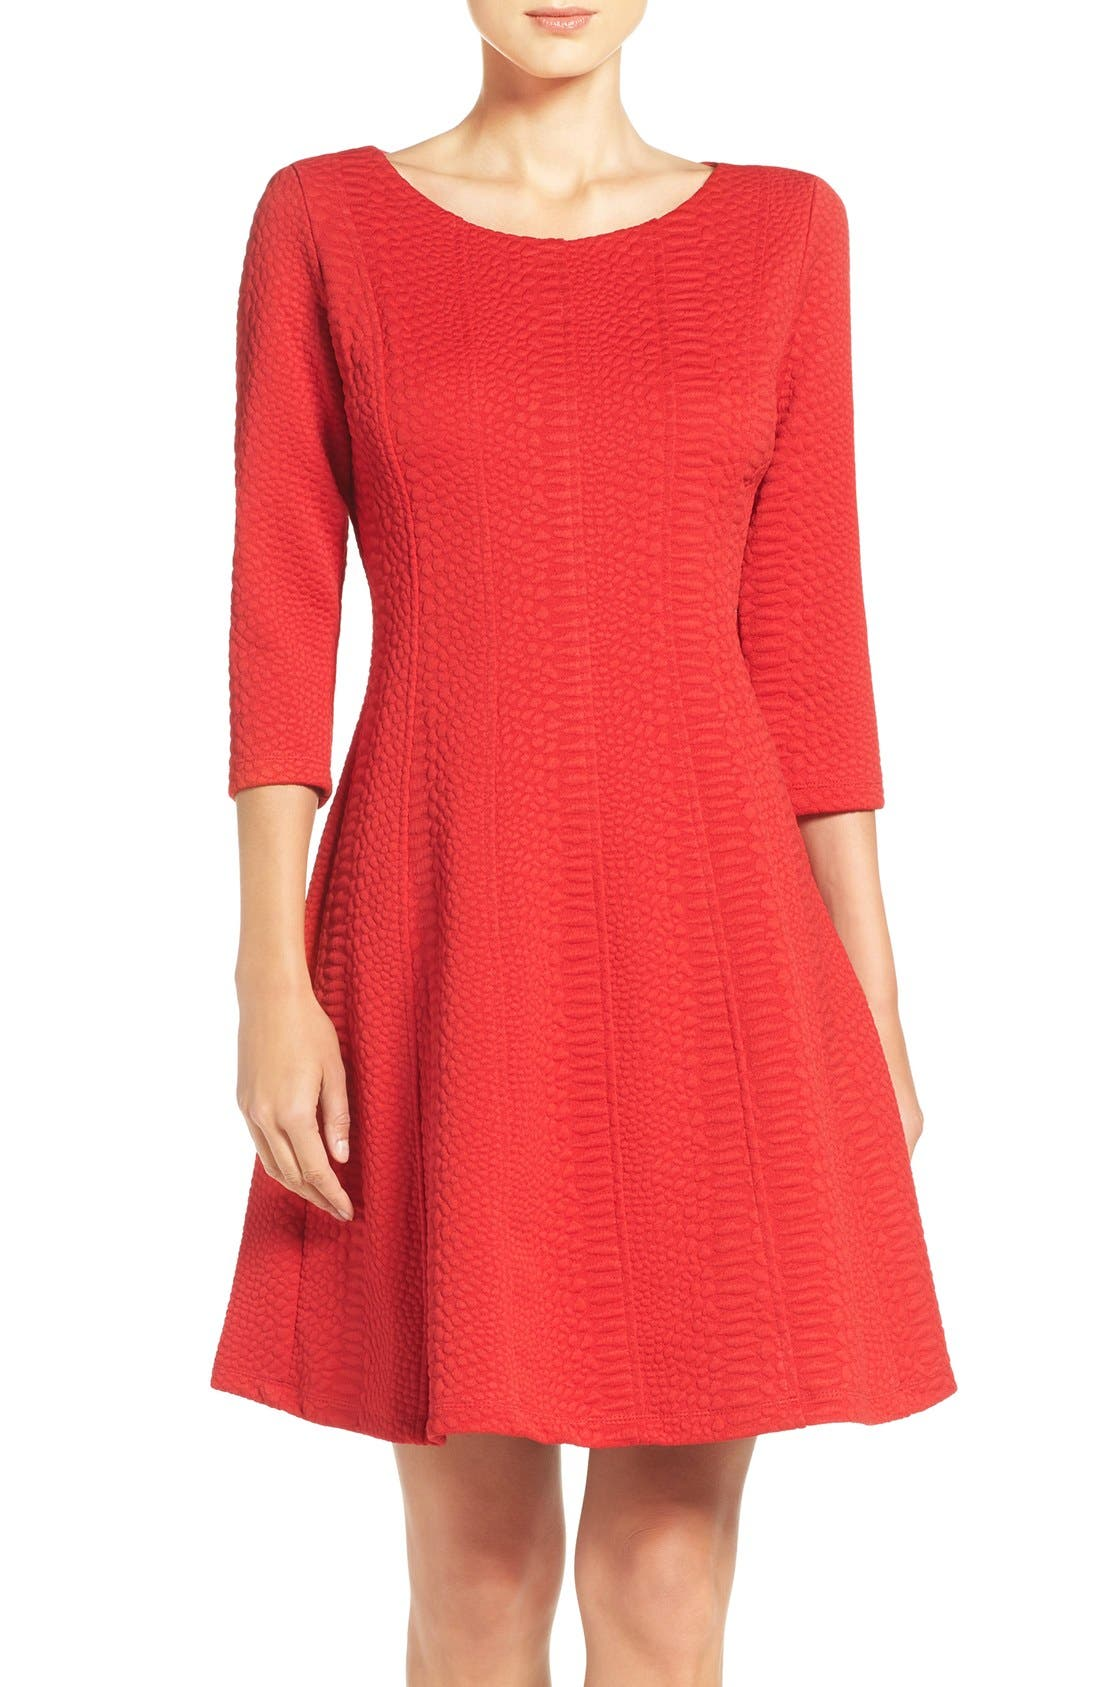 Taylor Dresses Jacquard Knit Fit & Flare Dress